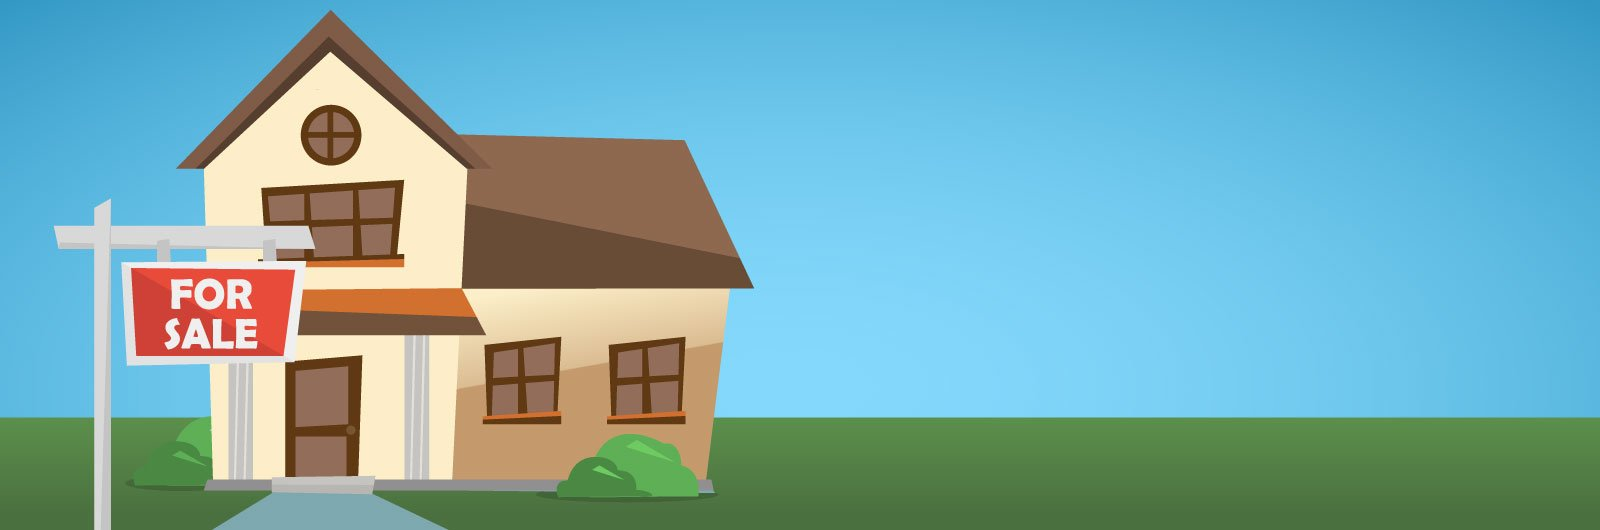 Illustration of a home for sale.